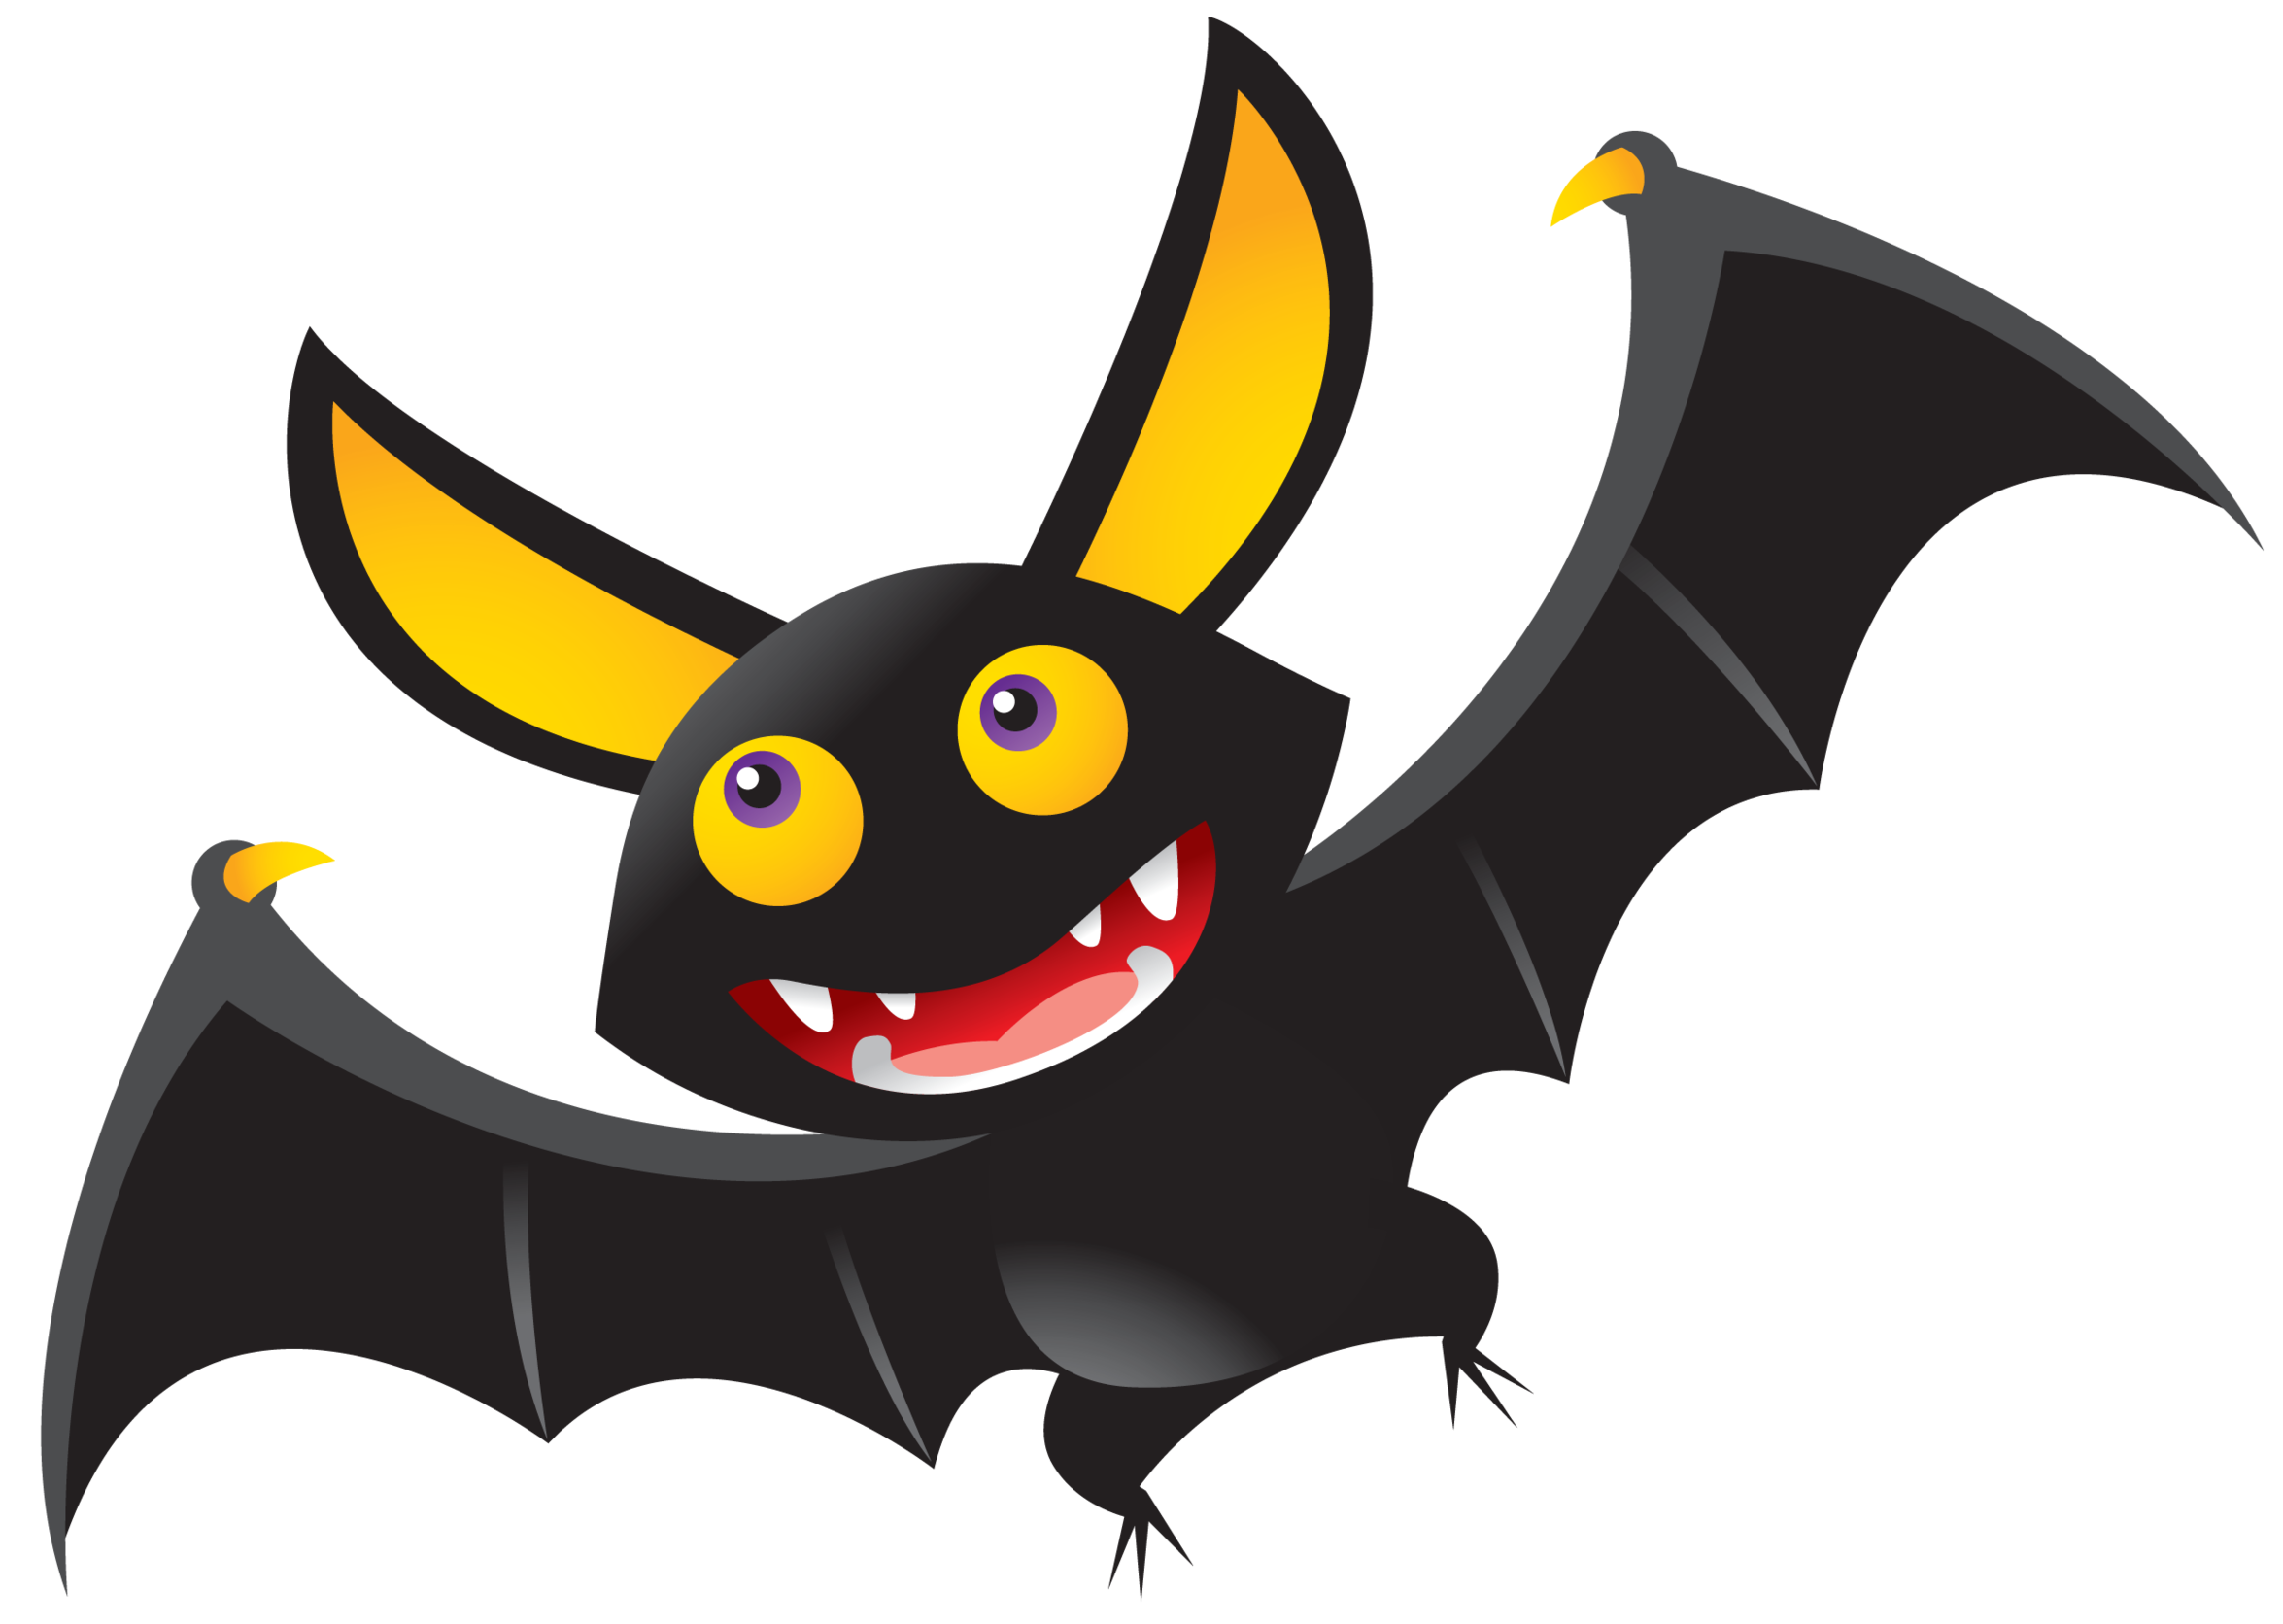 Cross bats clipart graphic library Bats clipart graphic library